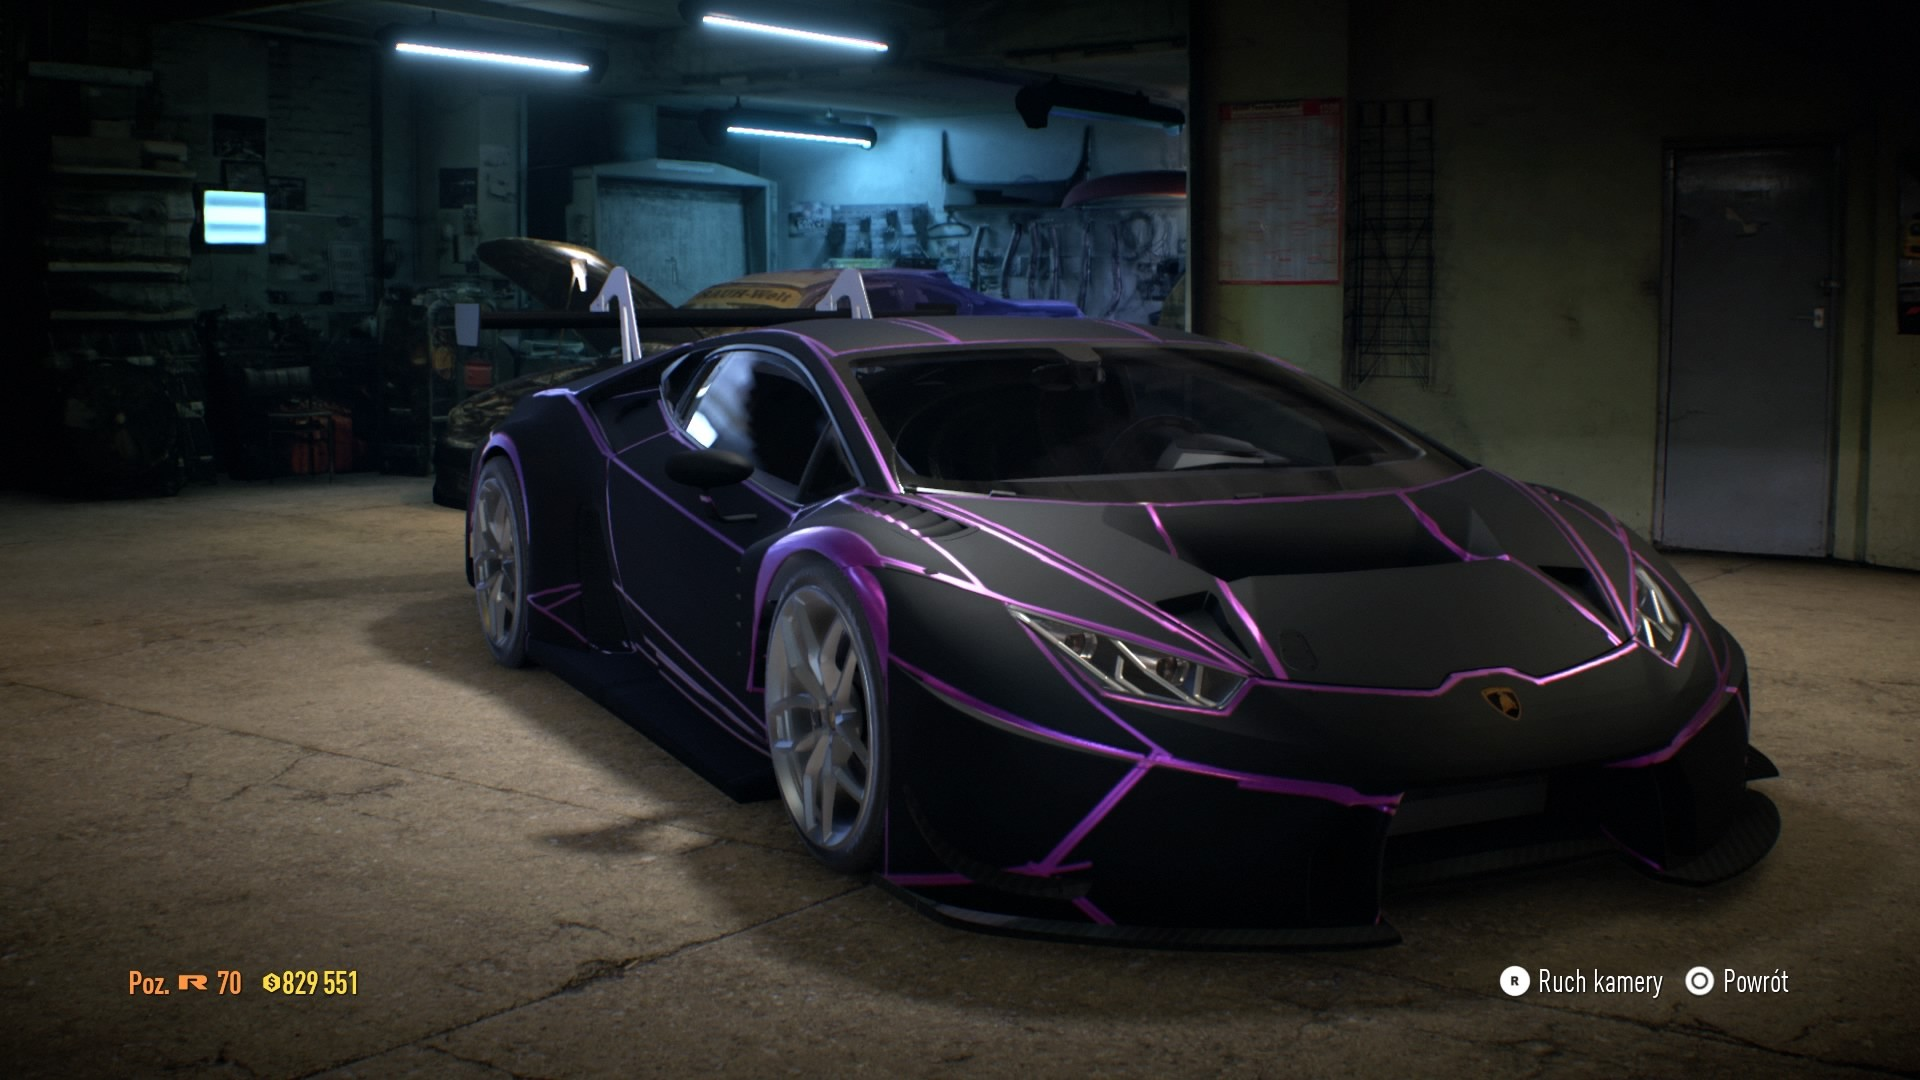 c9e3f4 Fabulous Lamborghini Huracan Need for Speed 2015 Cars Trend